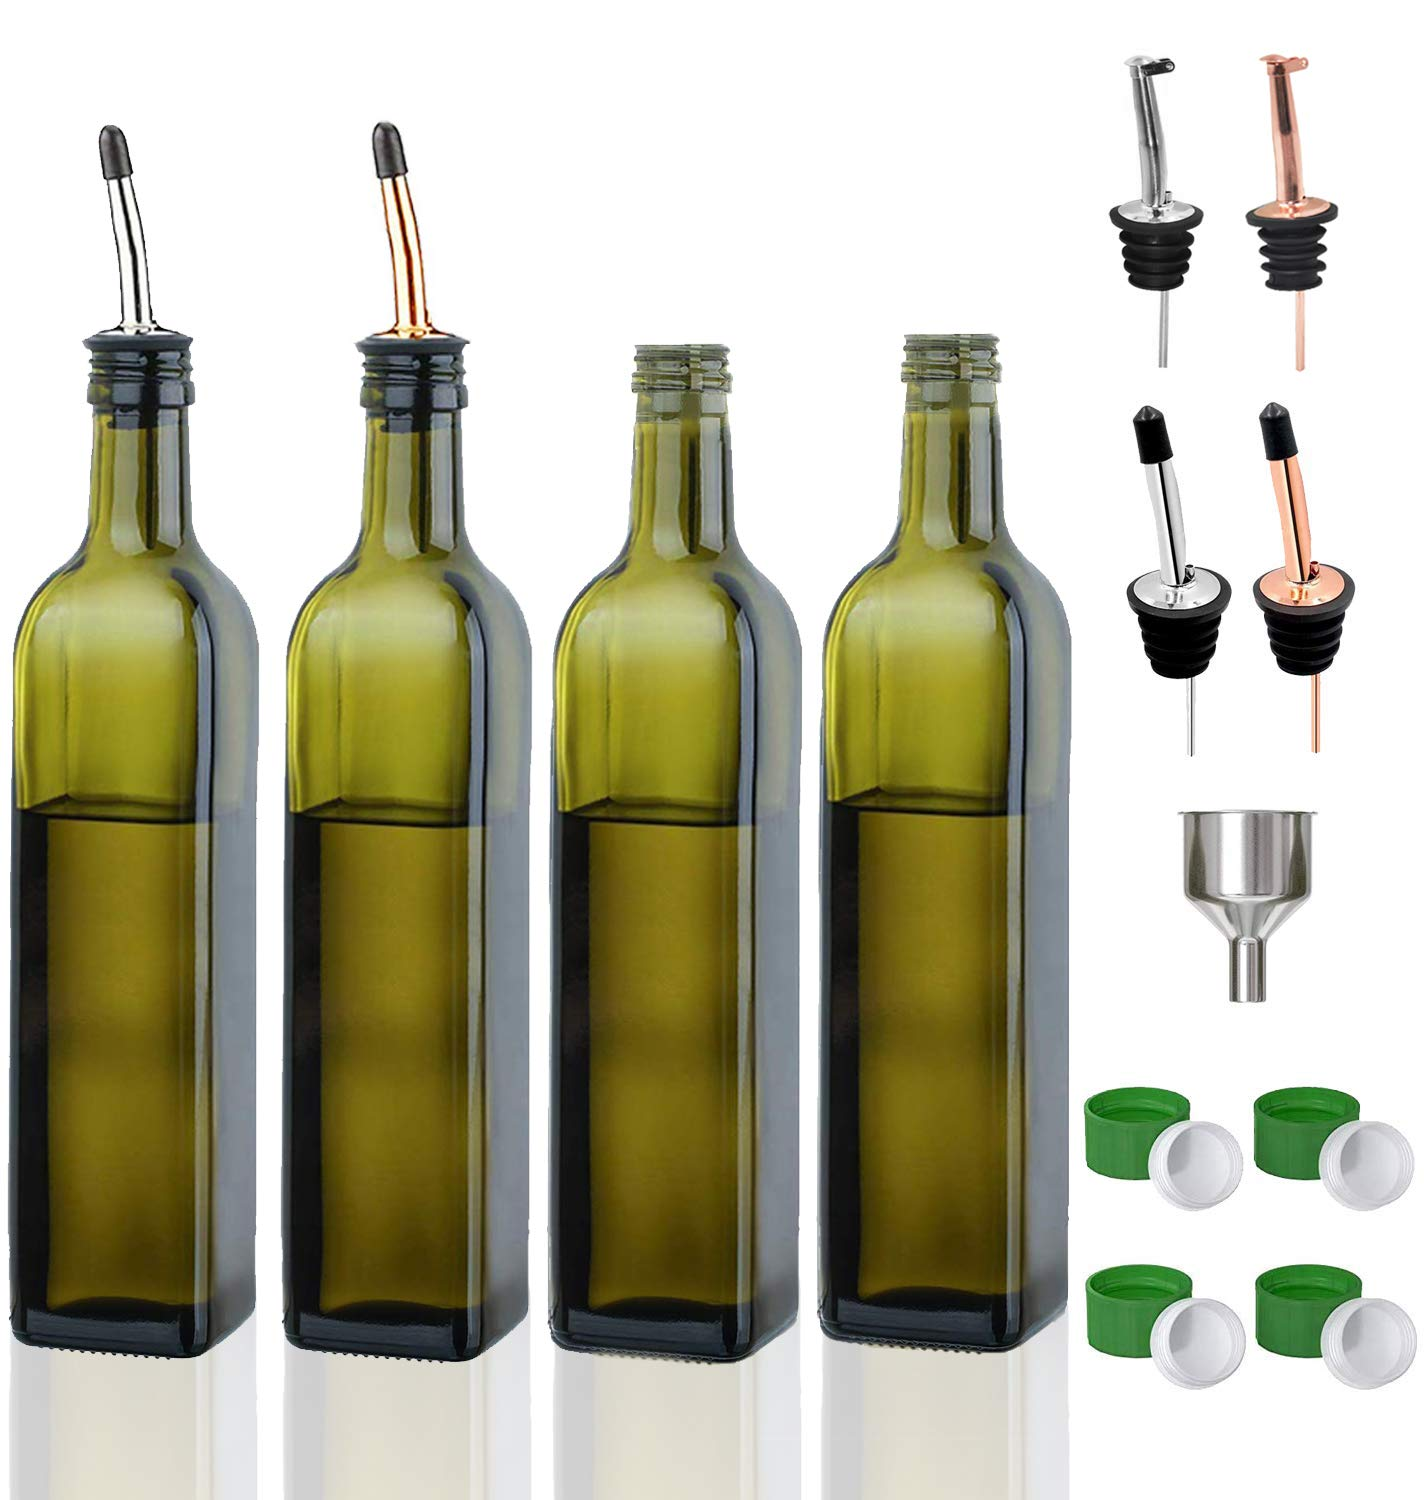 Olive Oil Dispenser Bottle-4 Pack of 17 oz Glass Olive Oil Bottles with Easy Pour Spout Set - Oil and Vinegar Cruet Set with Food Grade Funnel Drip Free Olive Oil Carafe Decanter for Kitchen by Gmisun